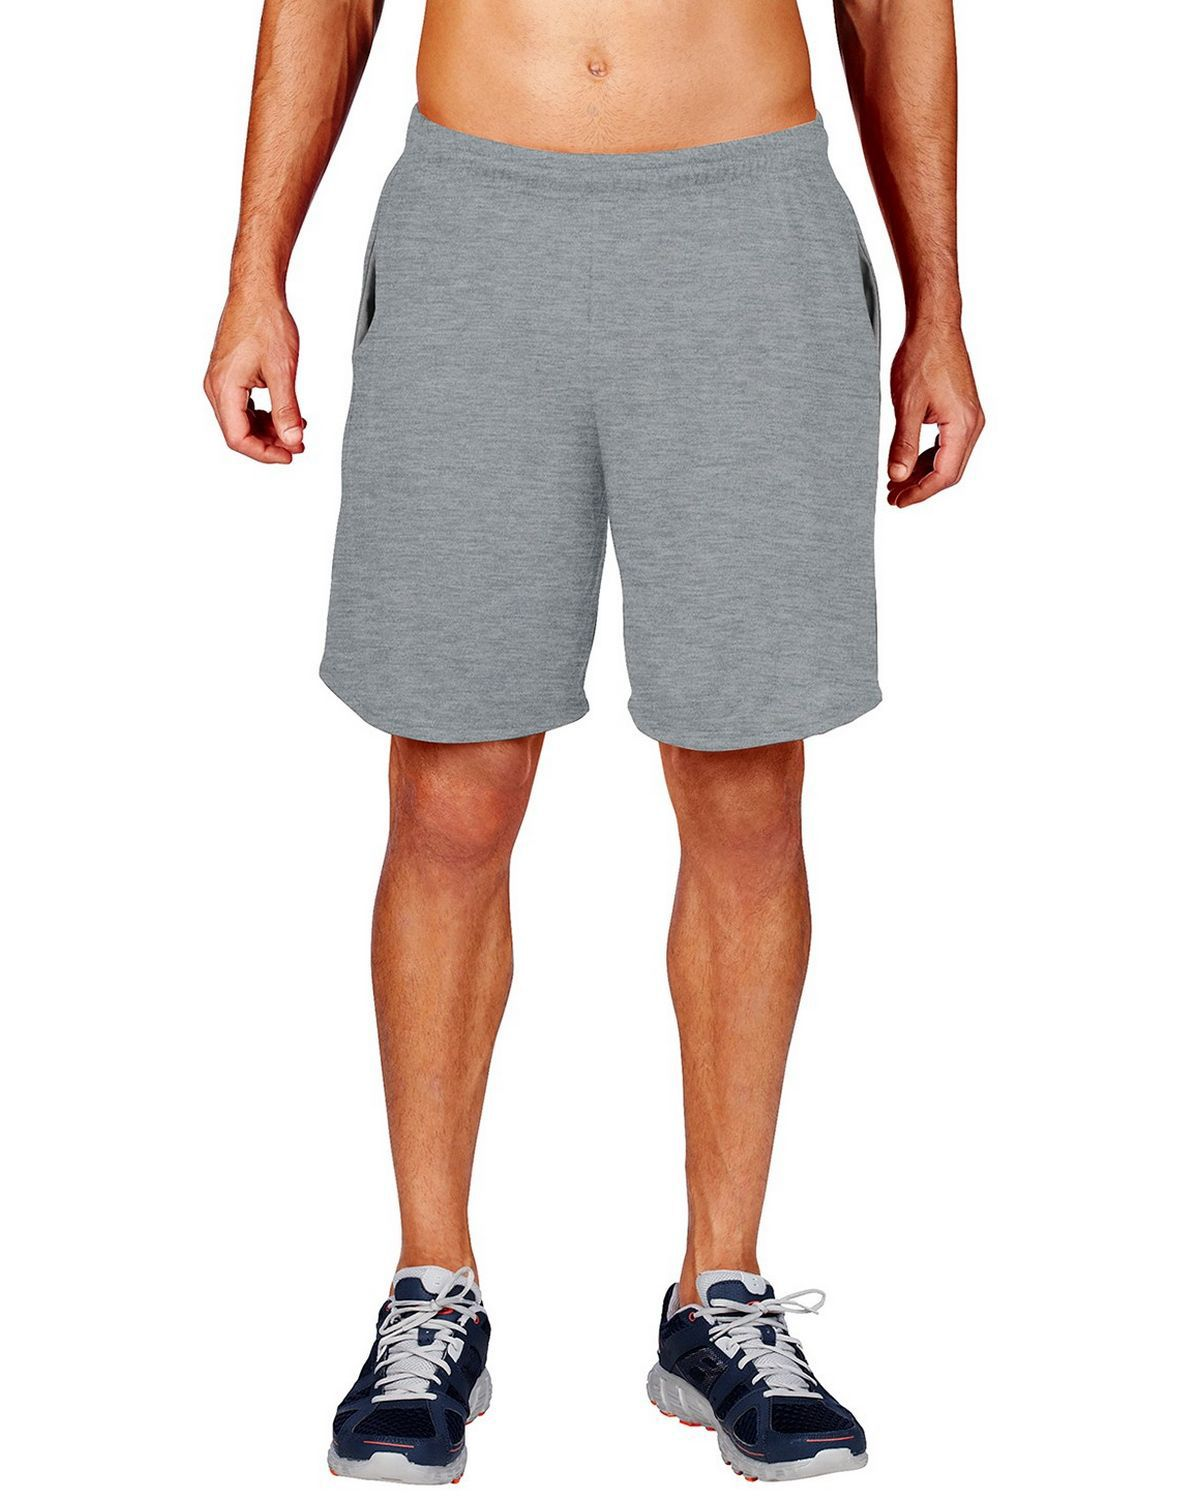 Gildan 44S30 Performance Adult 9 Shorts - Sport Grey - 3XL 44S30